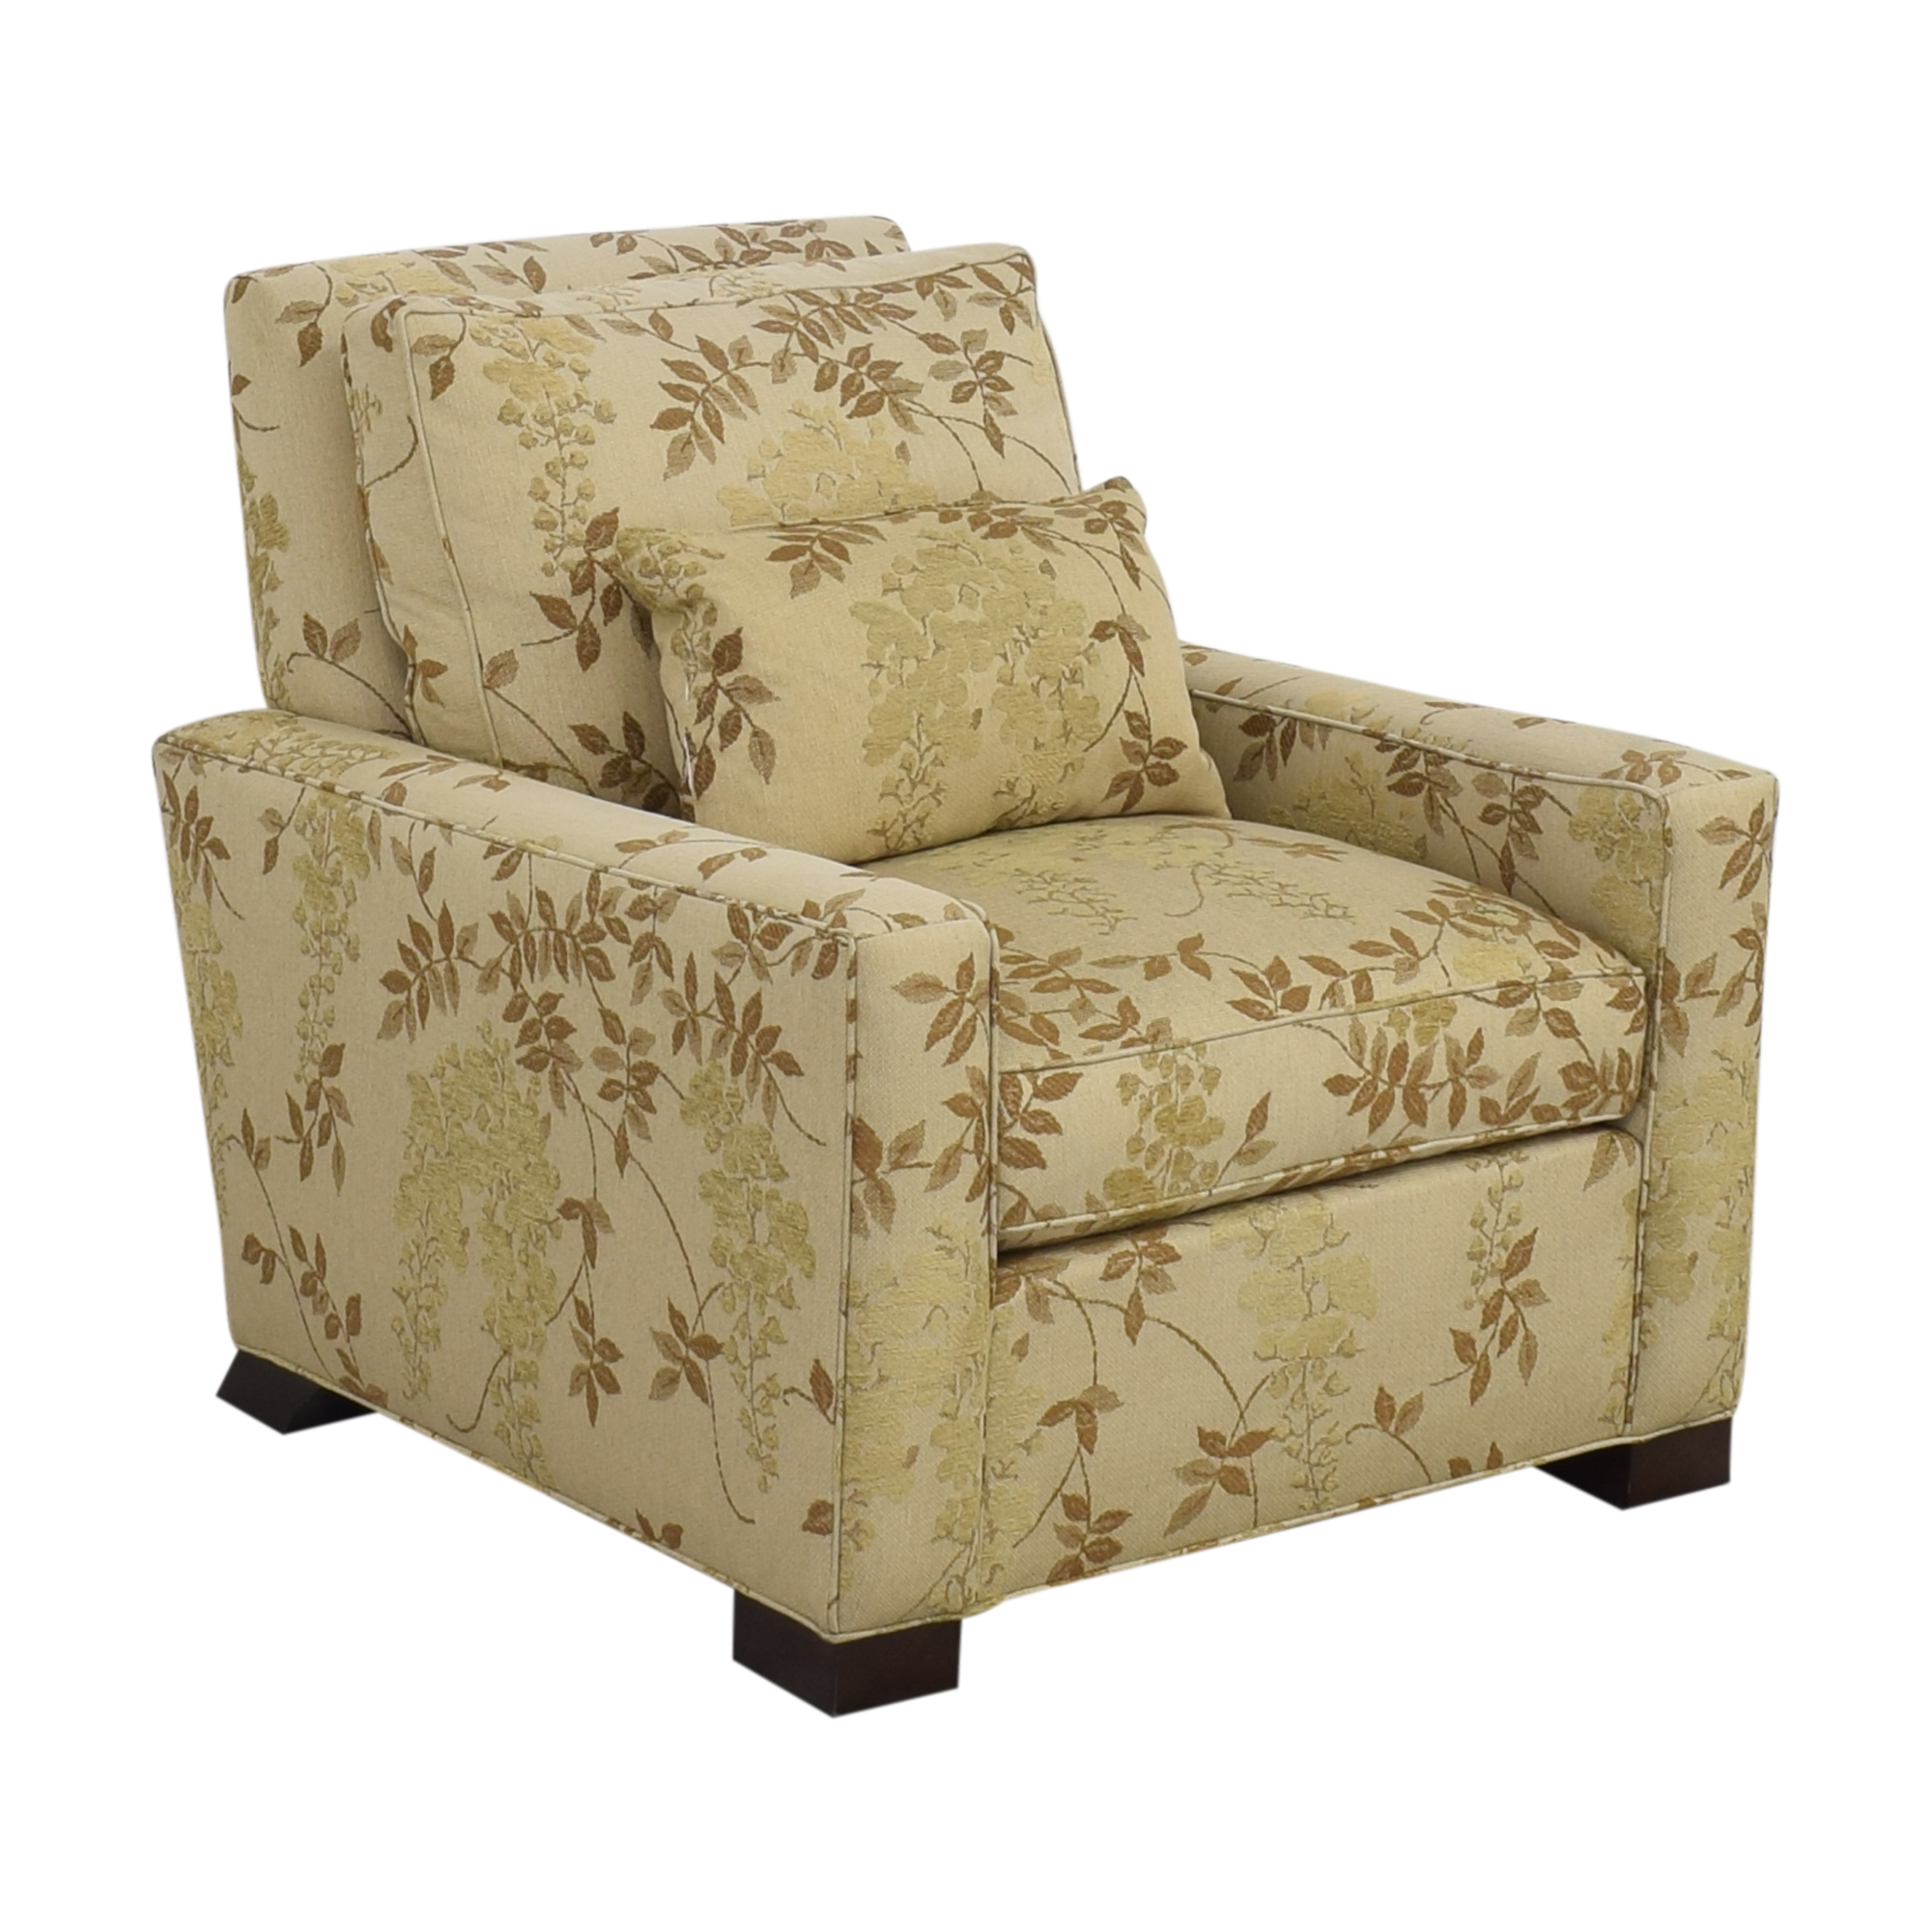 Hickory Chair Hickory Chair Upholstered Club Chair nj